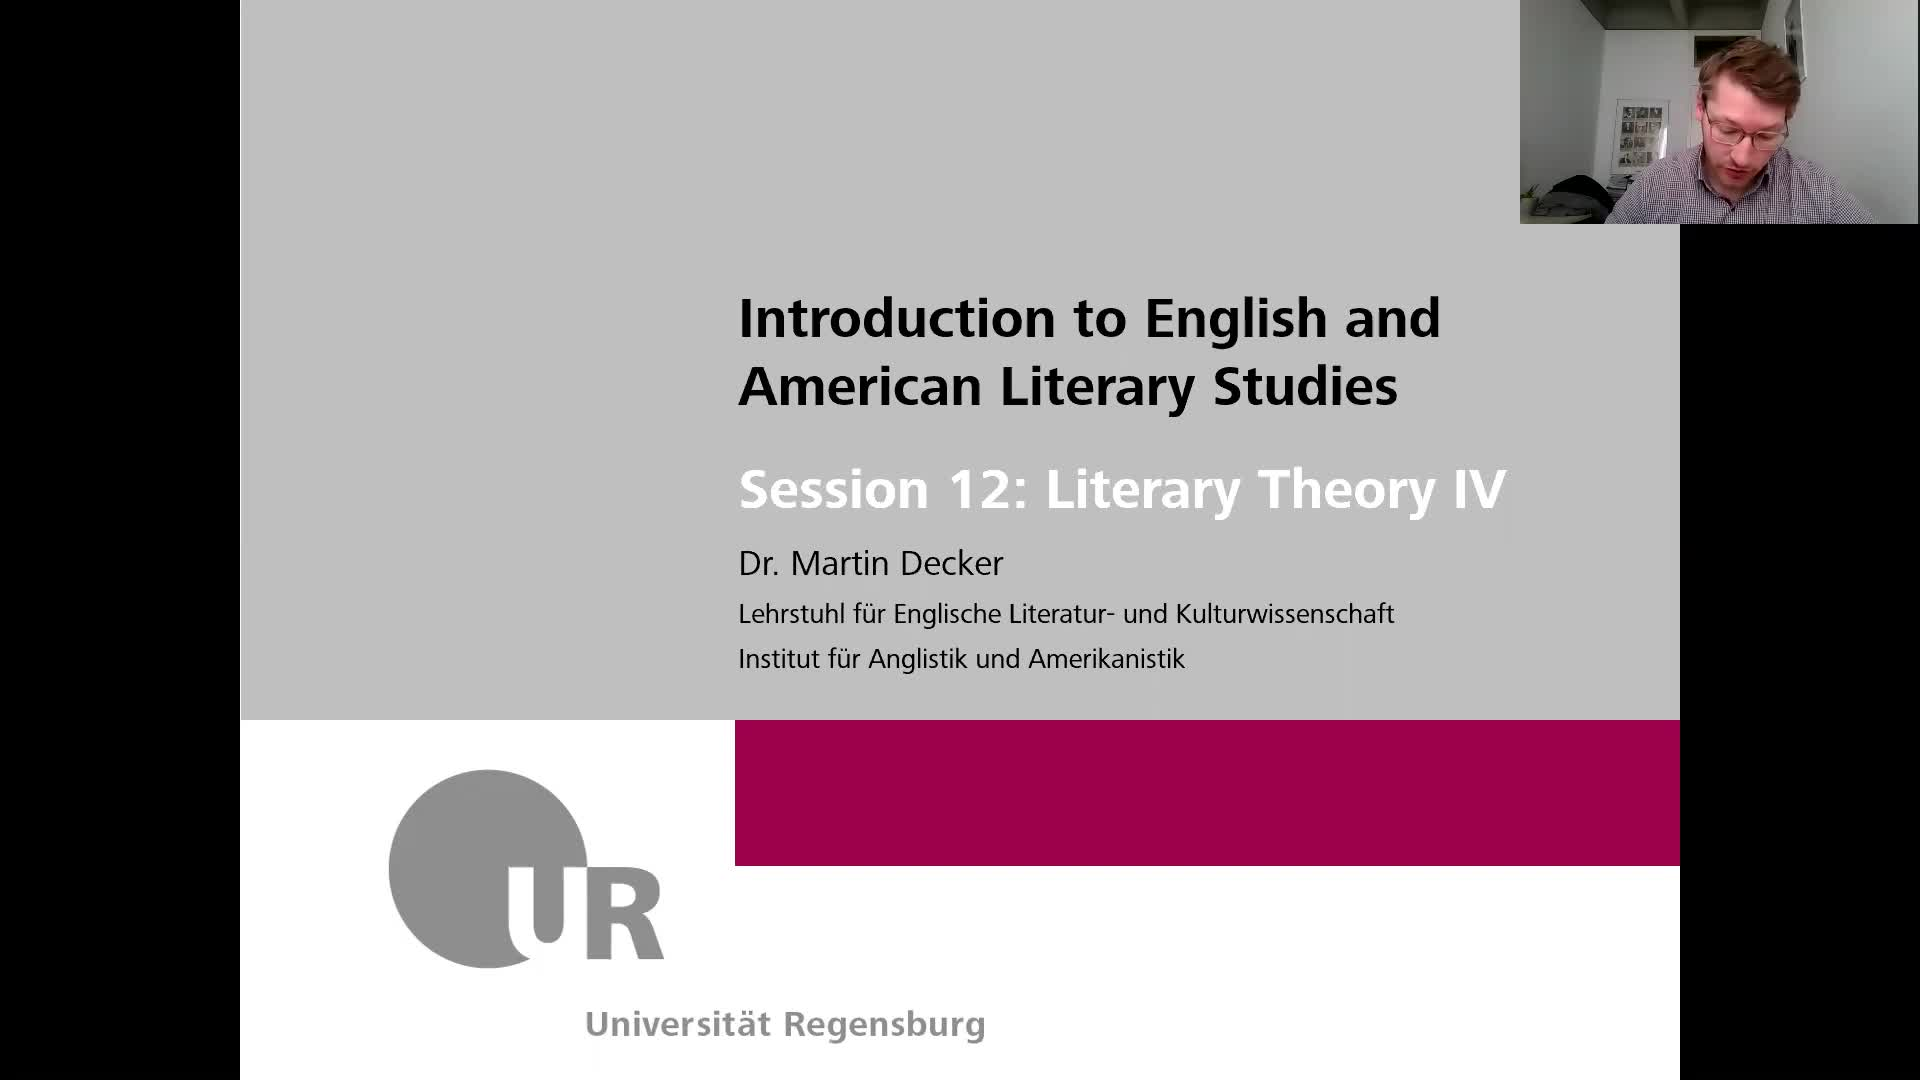 Introduction to English and American Literary Studies - LECTURE - Session 12